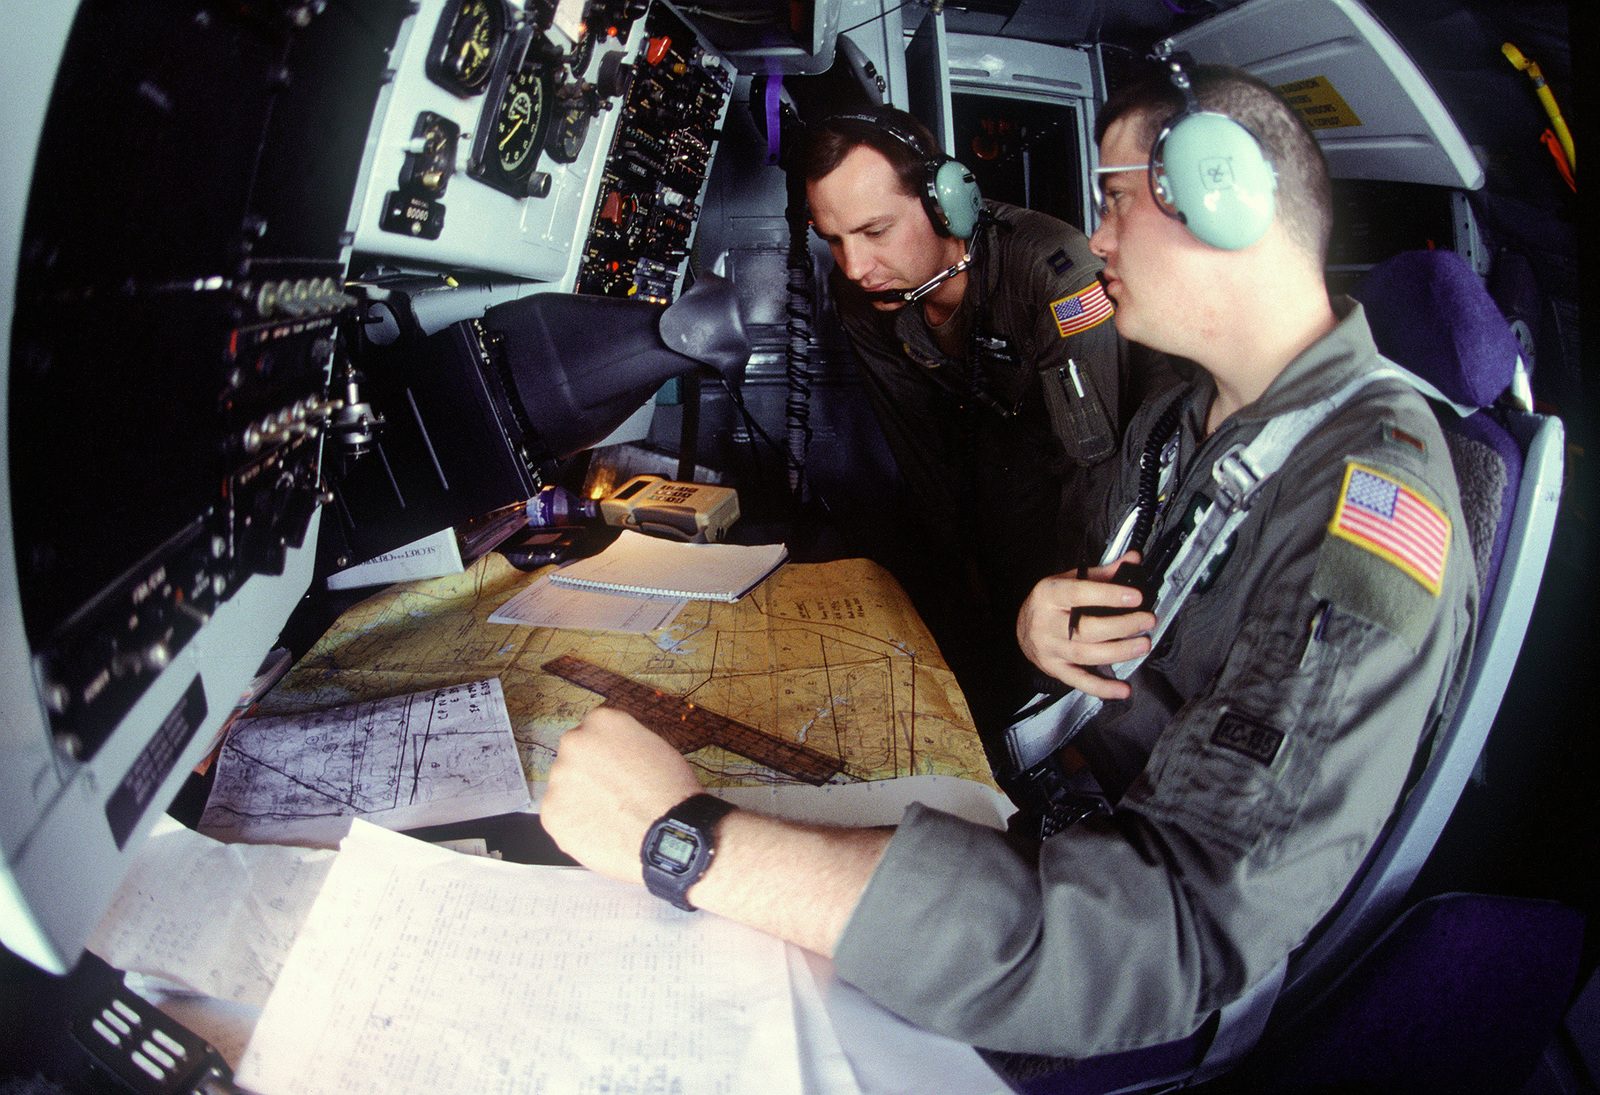 Navigators, 2nd Lieutenant Mathew C. Brennan (Right, Hometown: Baltimore, Maryland) and Captain Rod F. Cosgrove (Left, Hometown: Colorado Springs, Colorado) from the 96th Air Refueling Squadron, Fairchild Air Force Base, Washington check the navigation maps during a mission in a KC-135 aircraft over Jordan in support of the Air Power Expeditionary Force. An ancillary mission of the Force is to assist US Air Force and other multinational forces operating in Saudi Arabia and other nearby countries patrol the no-fly zone over southern Iraq